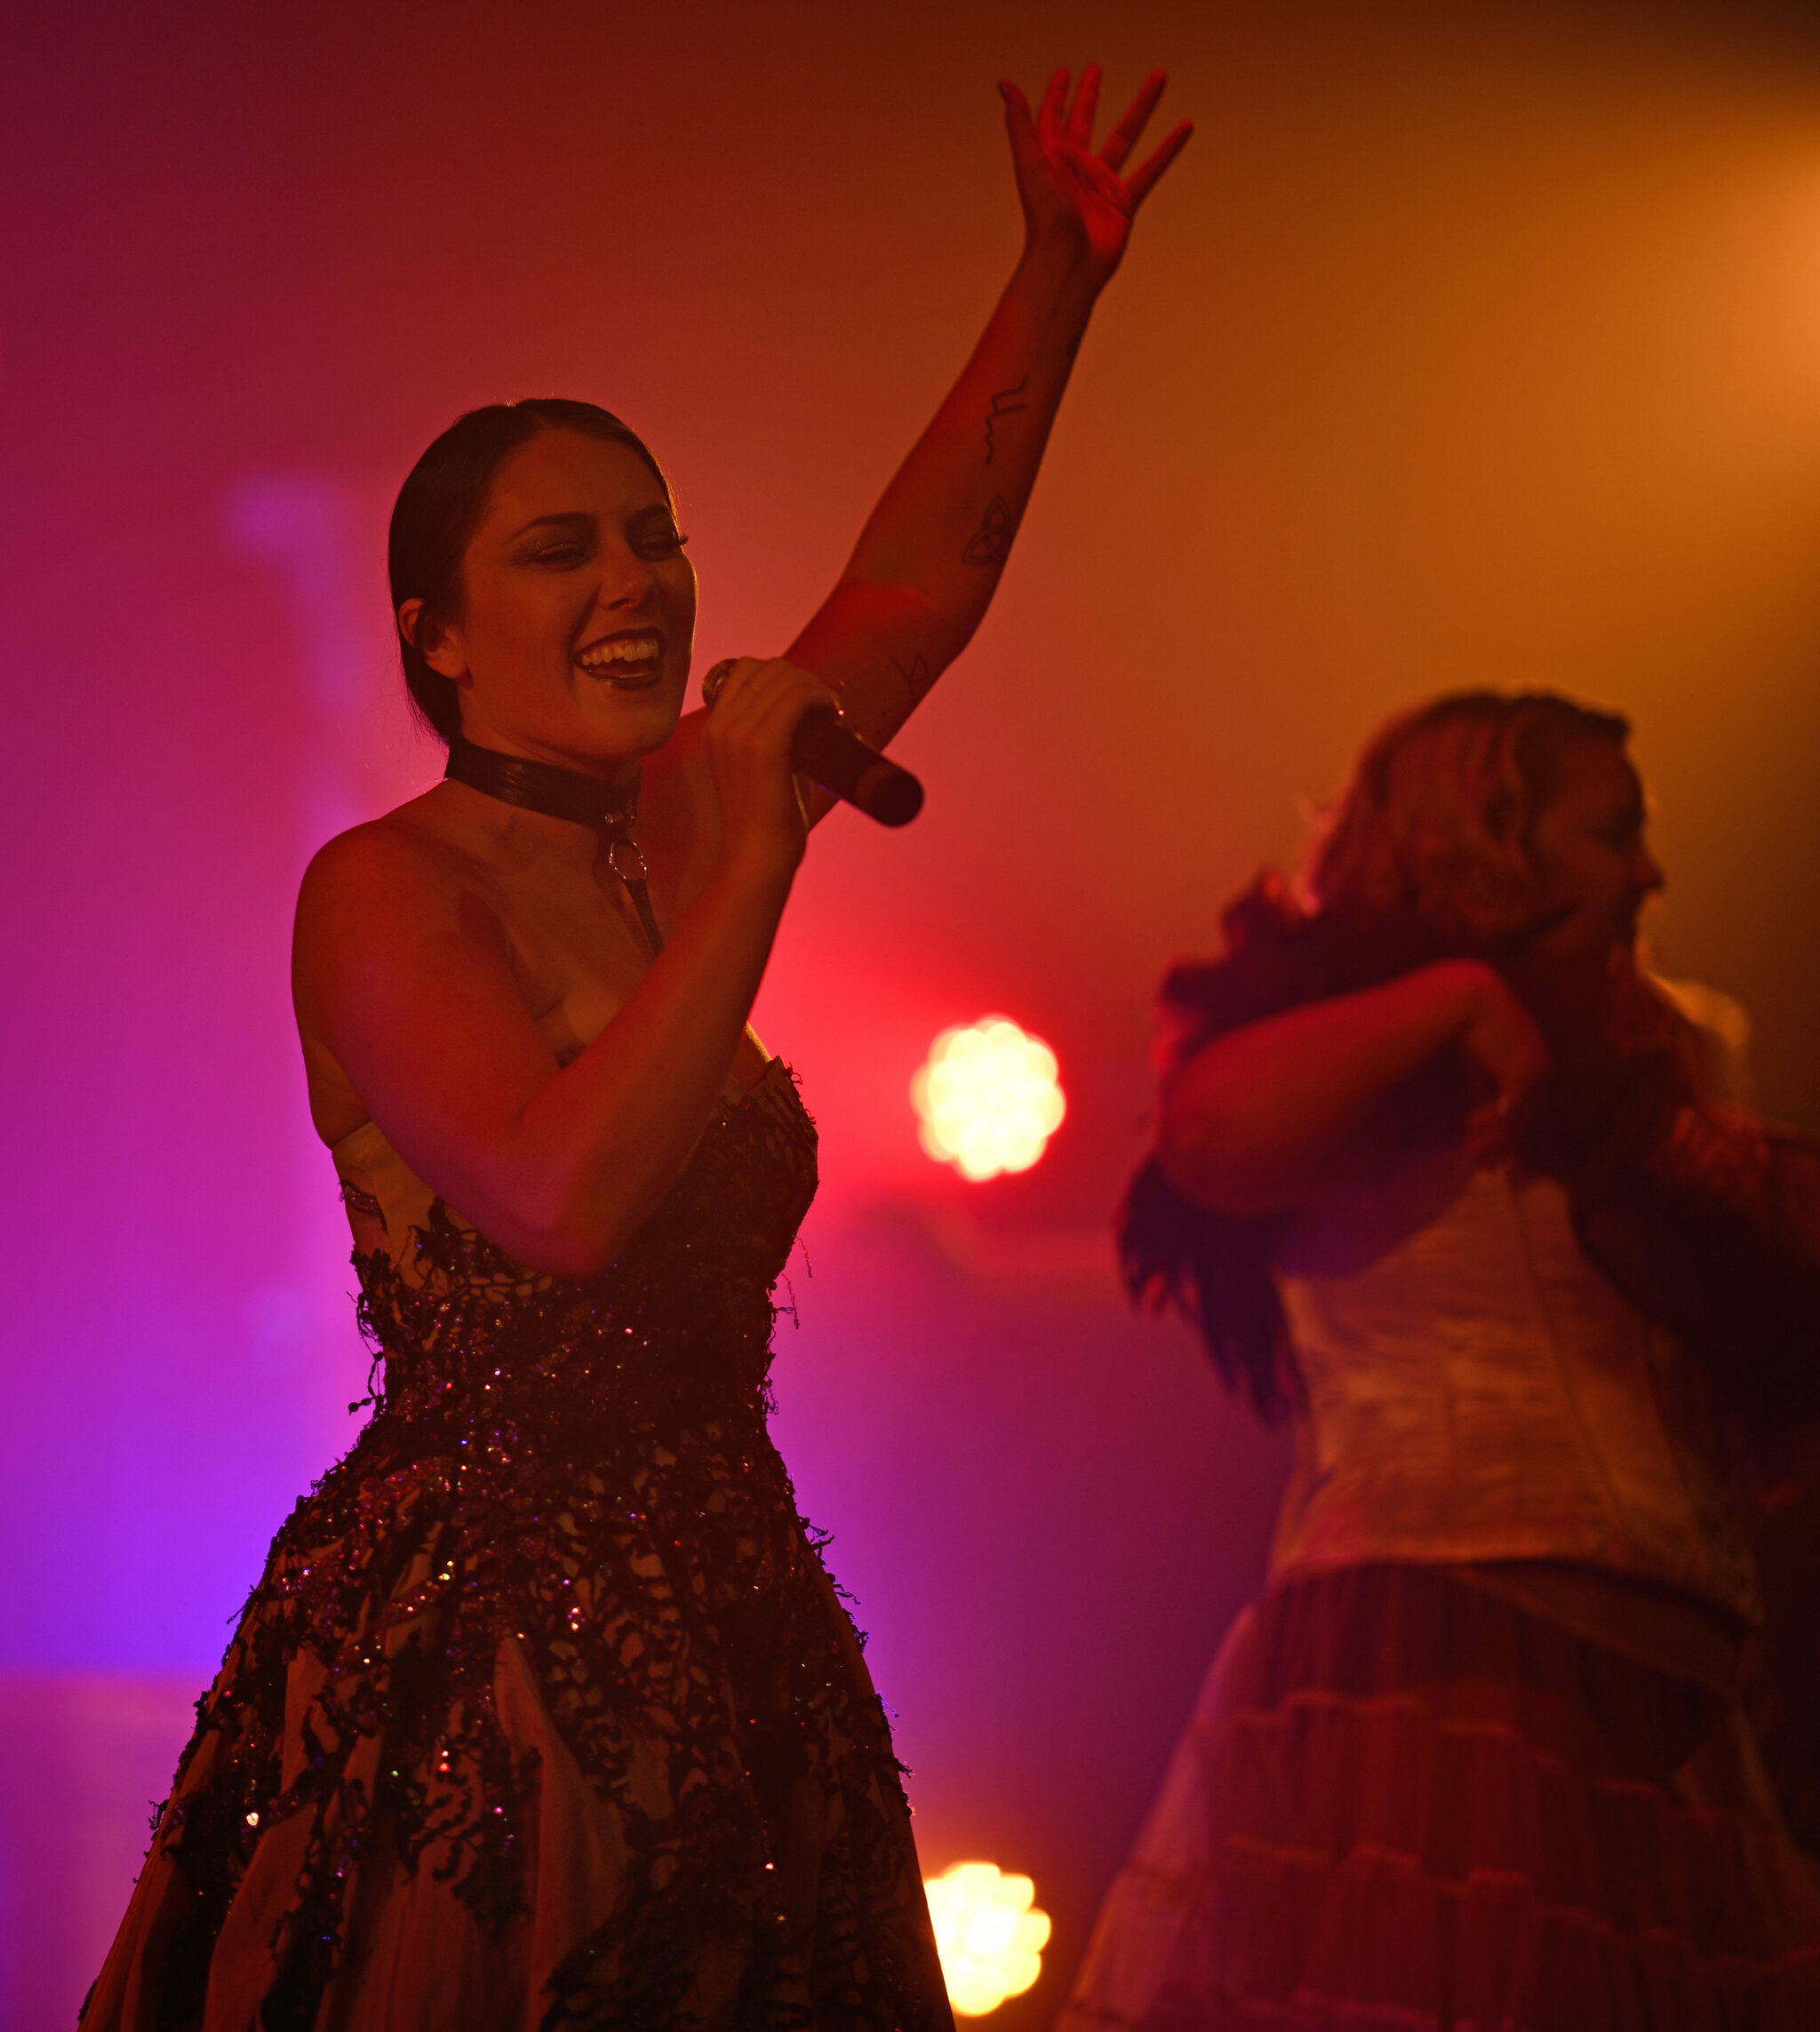 - As well as dance Rebekkah enjoys her other genres of performance: singing, acting and burlesque. She thrives in live performances and is grateful for all the performance opportunities that have come her way.